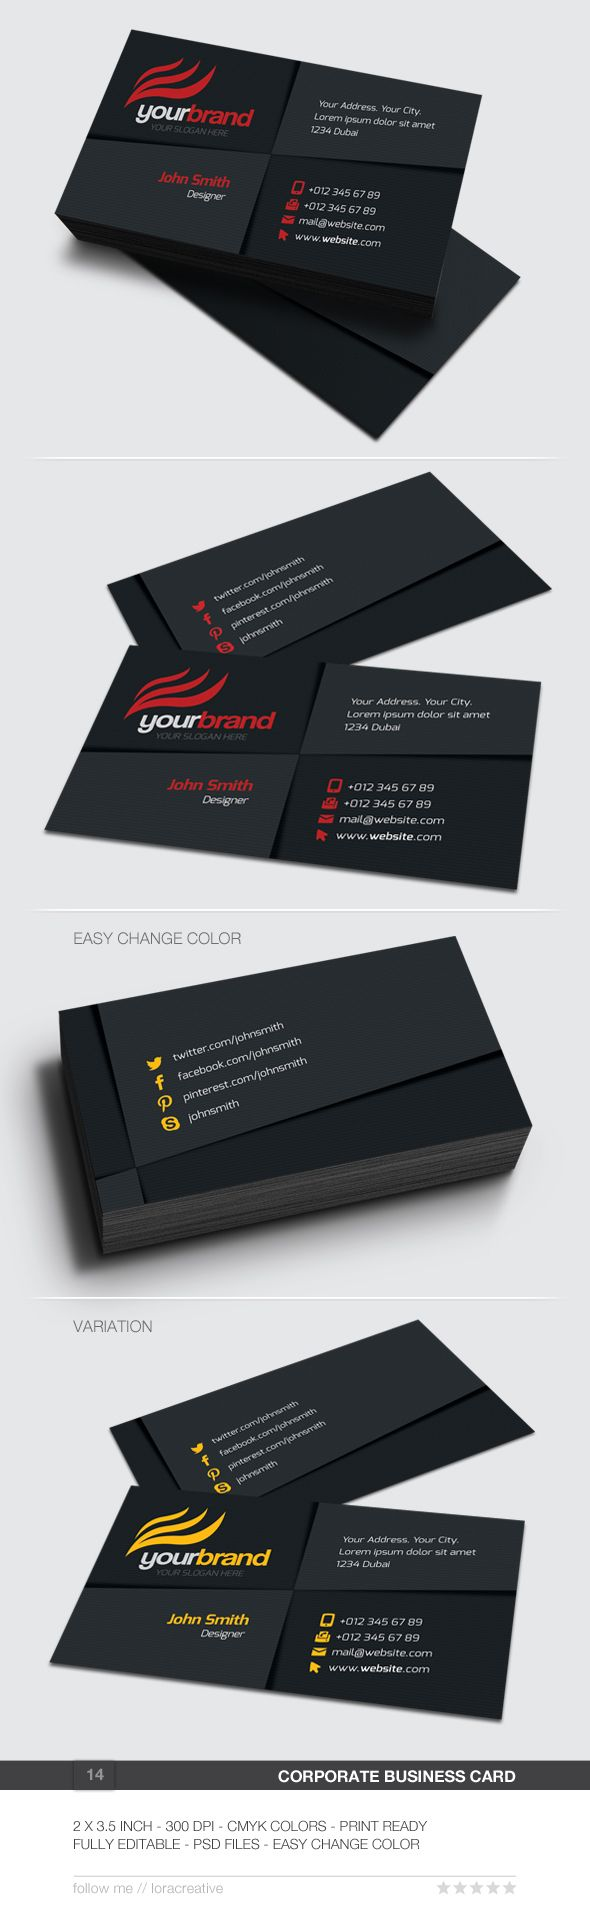 37 best free business card templates images on pinterest free